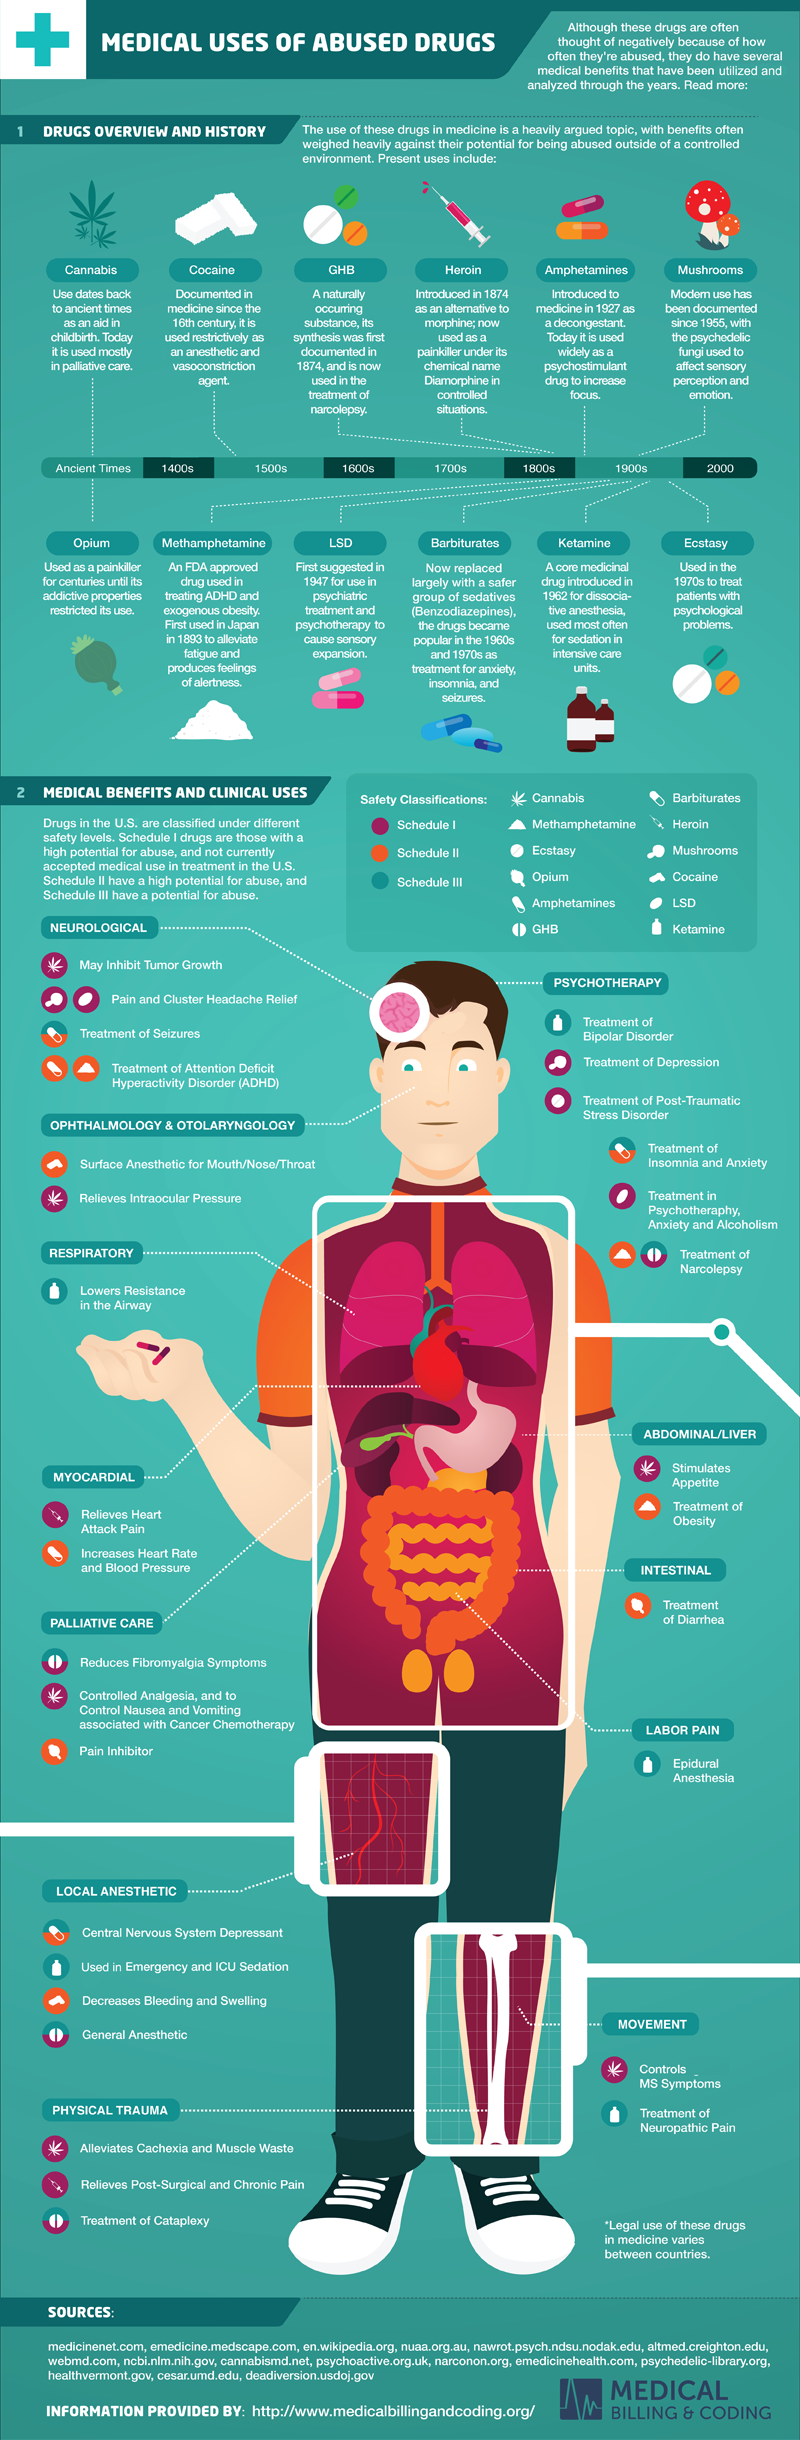 Medical uses of abused drugs infographic the weed blog blog medical uses of abused drugs infographic the weed blog blog 1betcityfo Choice Image